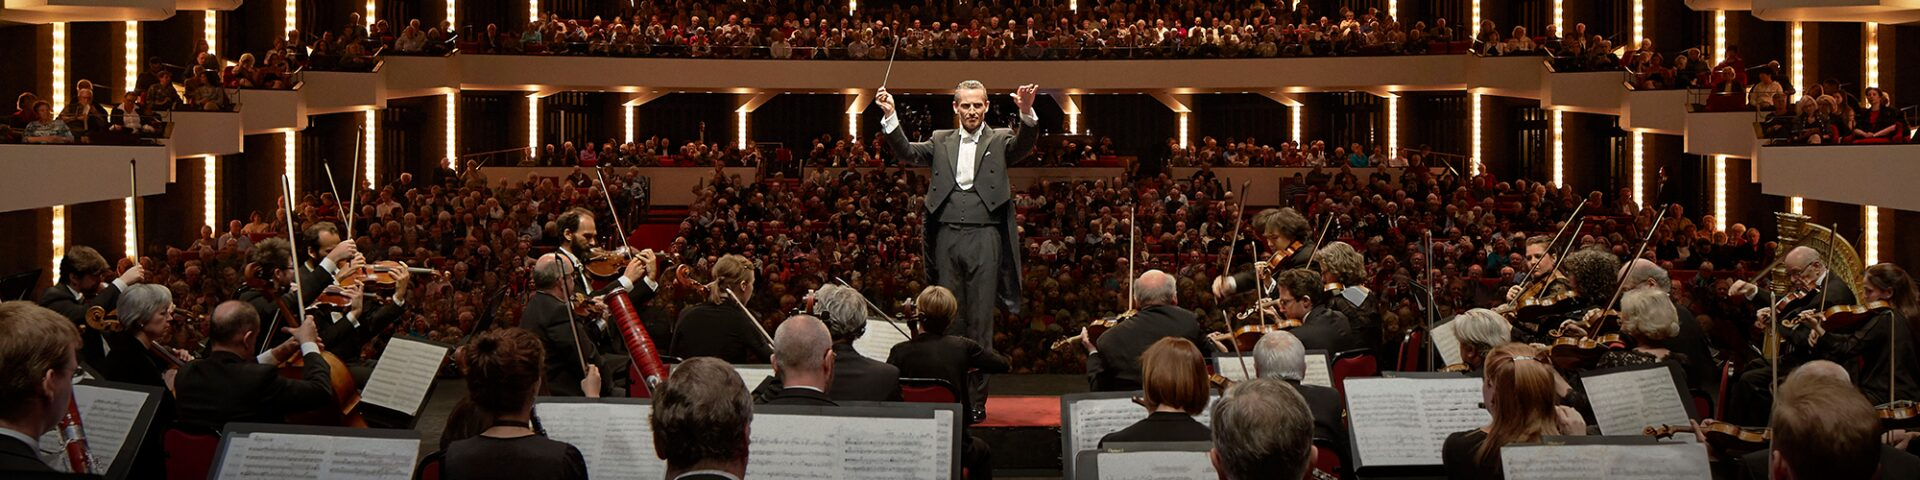 An Orchestra performing in concert